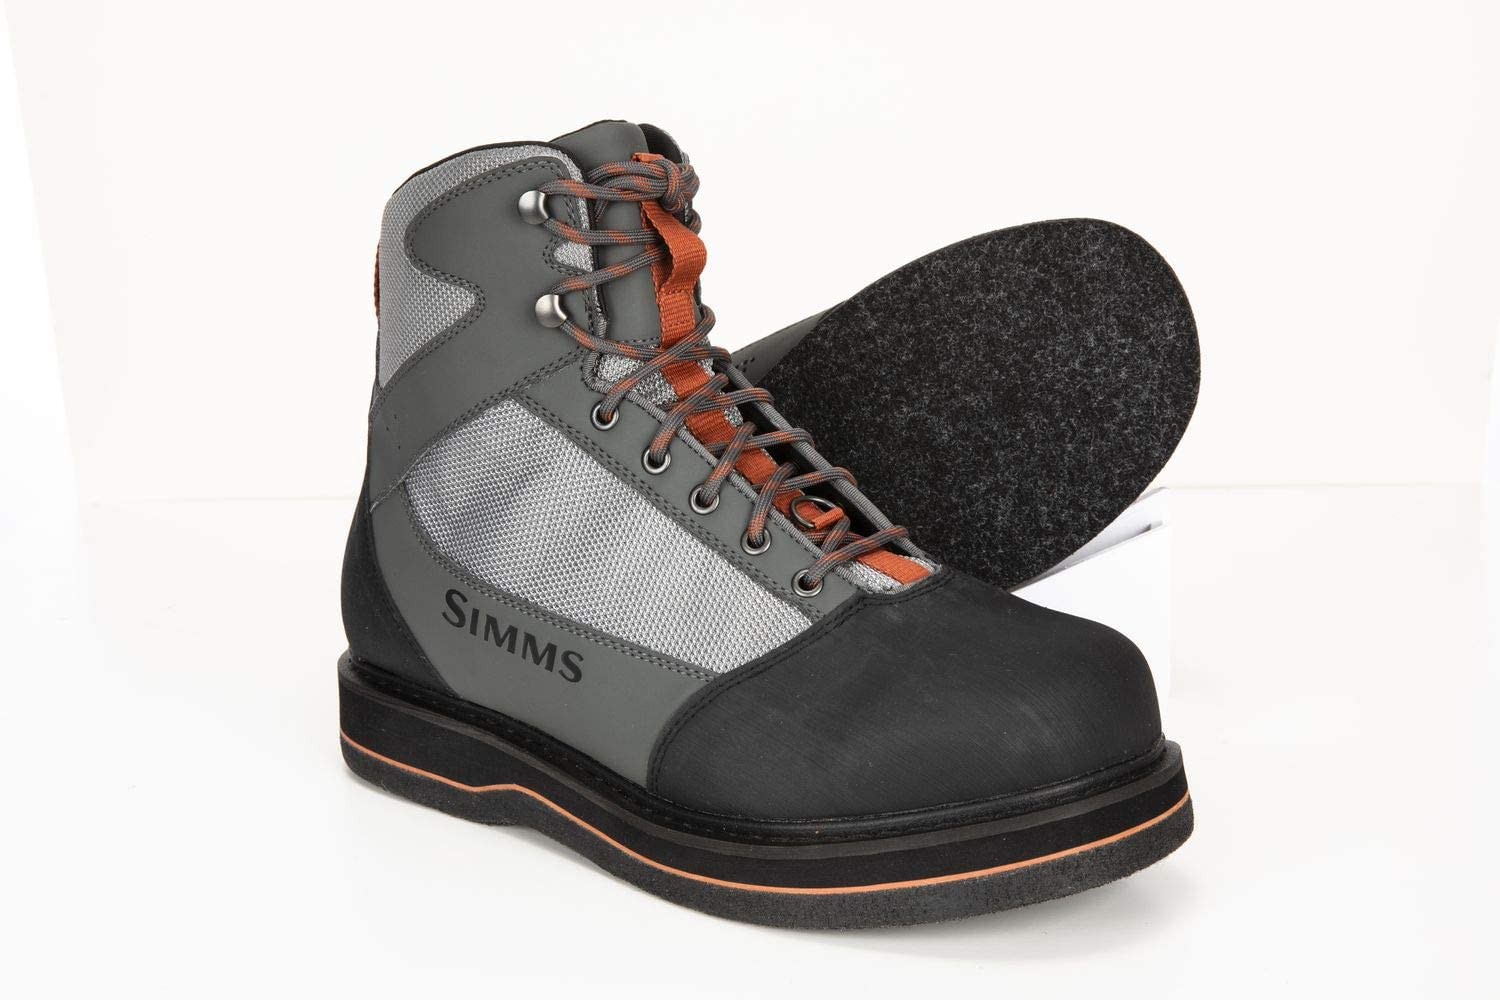 best felt sole boots for wet wading